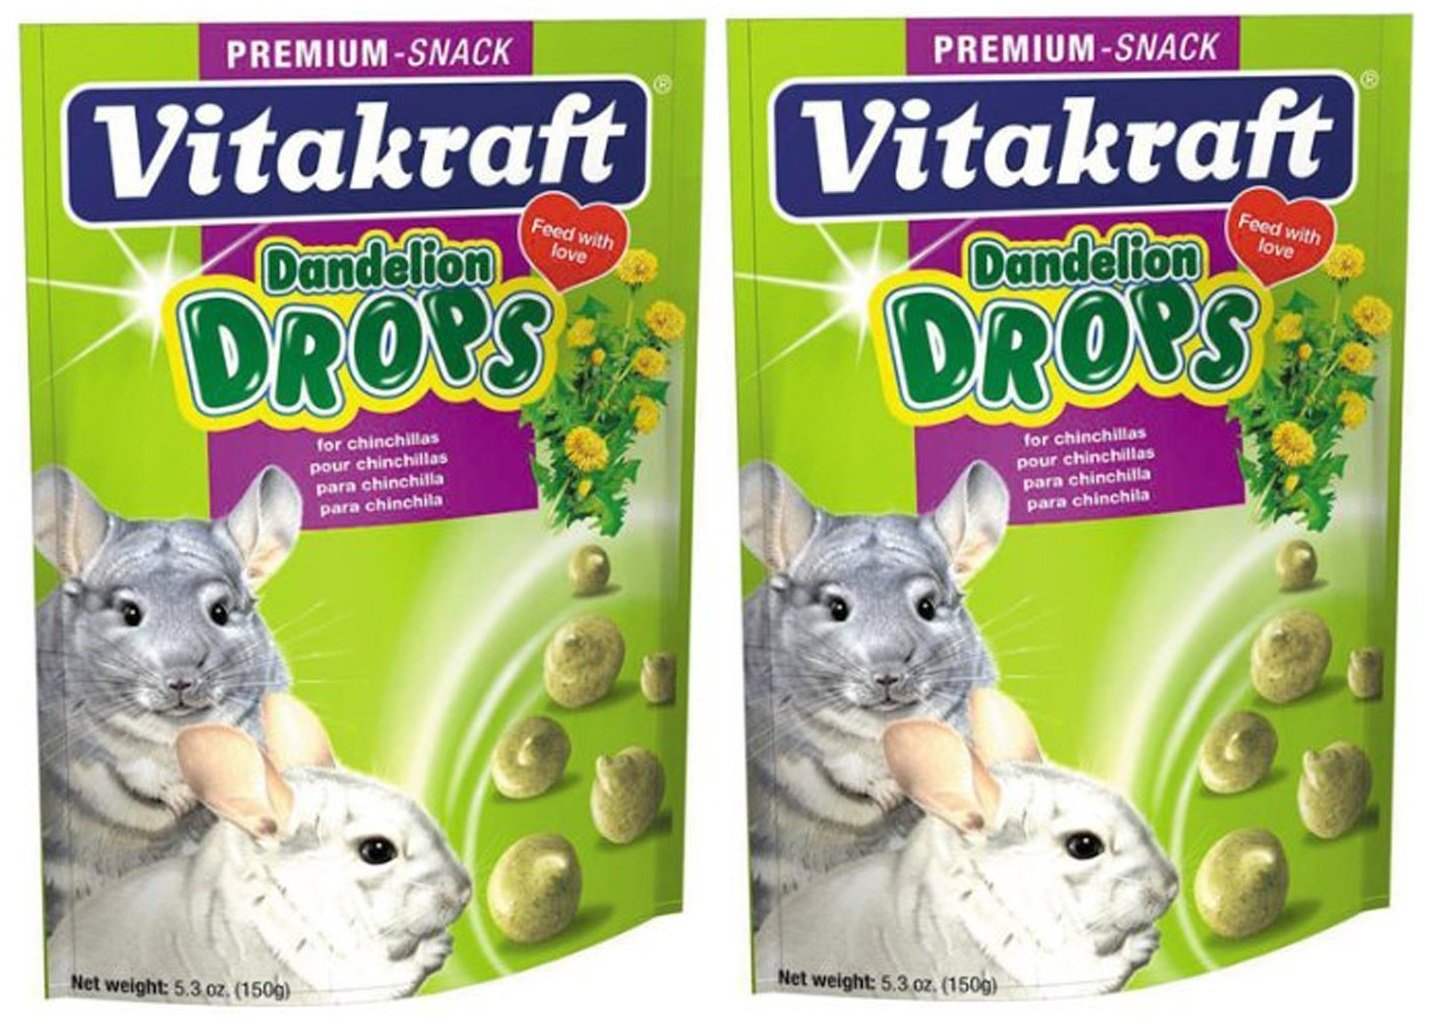 (2 Pack) Vitakraft Dandelion Drops for Chinchillas (5.3 Ounces Per Pack)